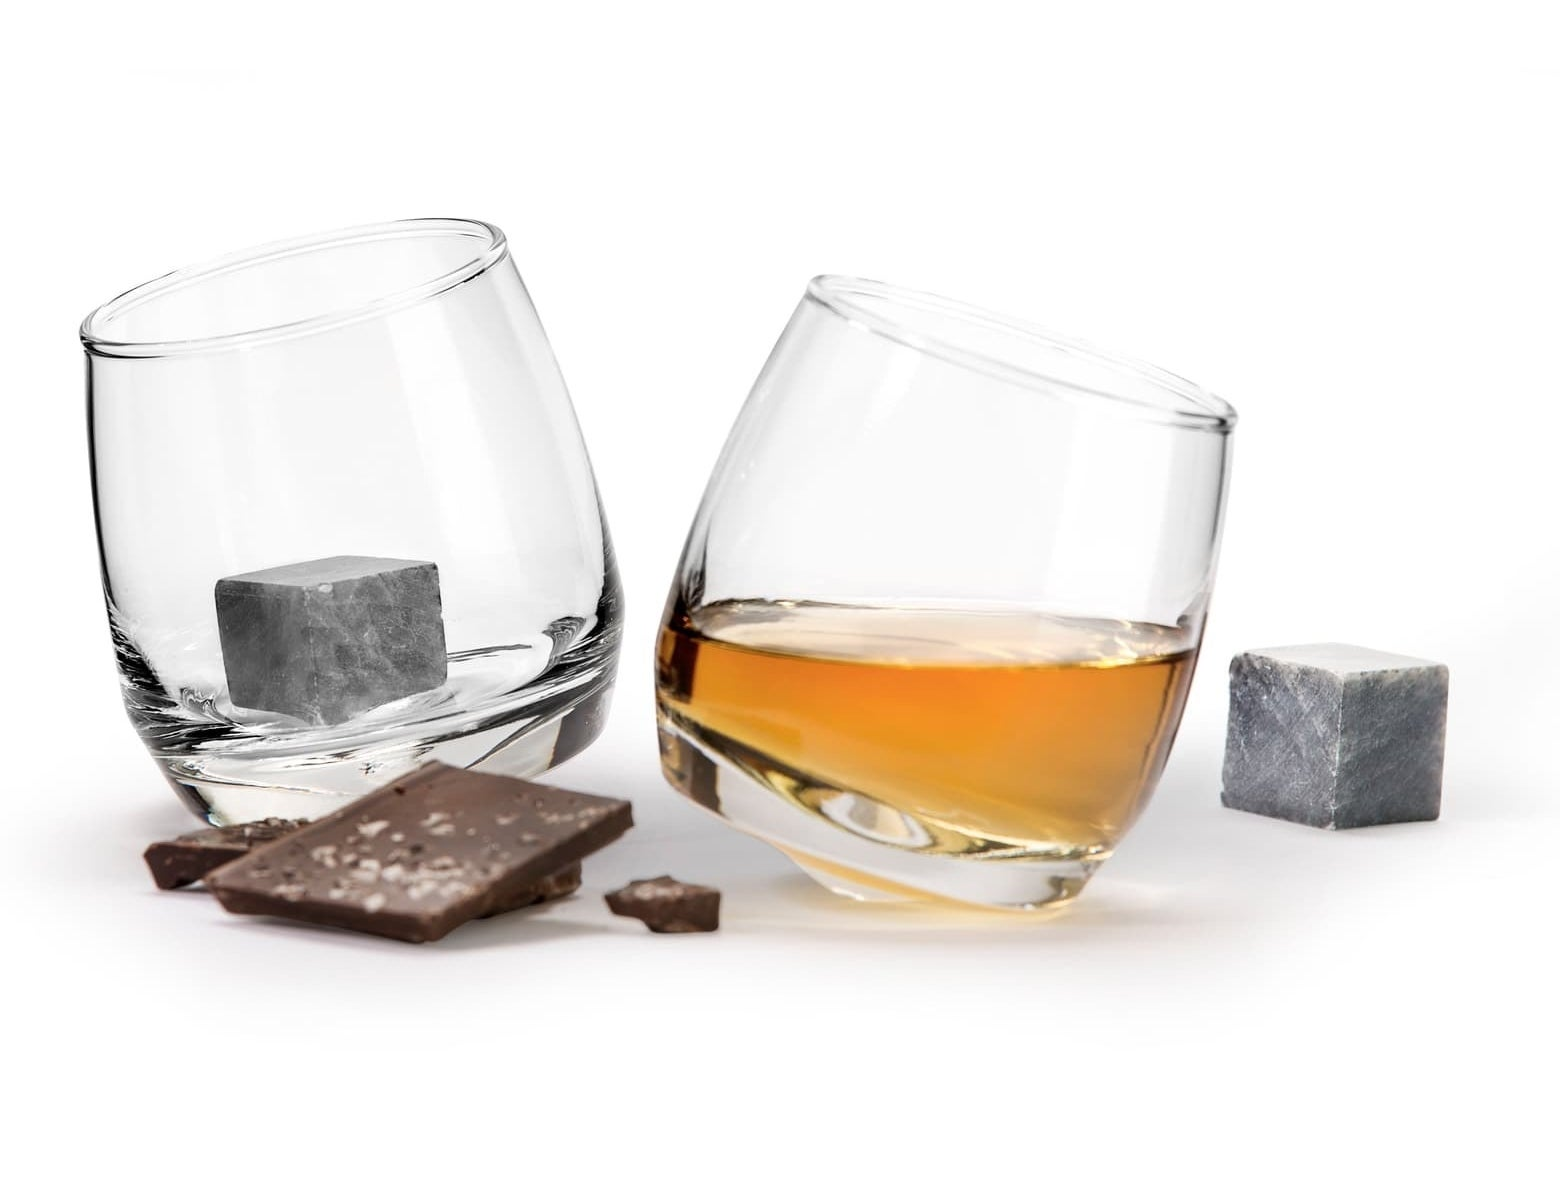 The two glasses one with liquid in it and one with the stone inside and the other stone sitting next to the glasses